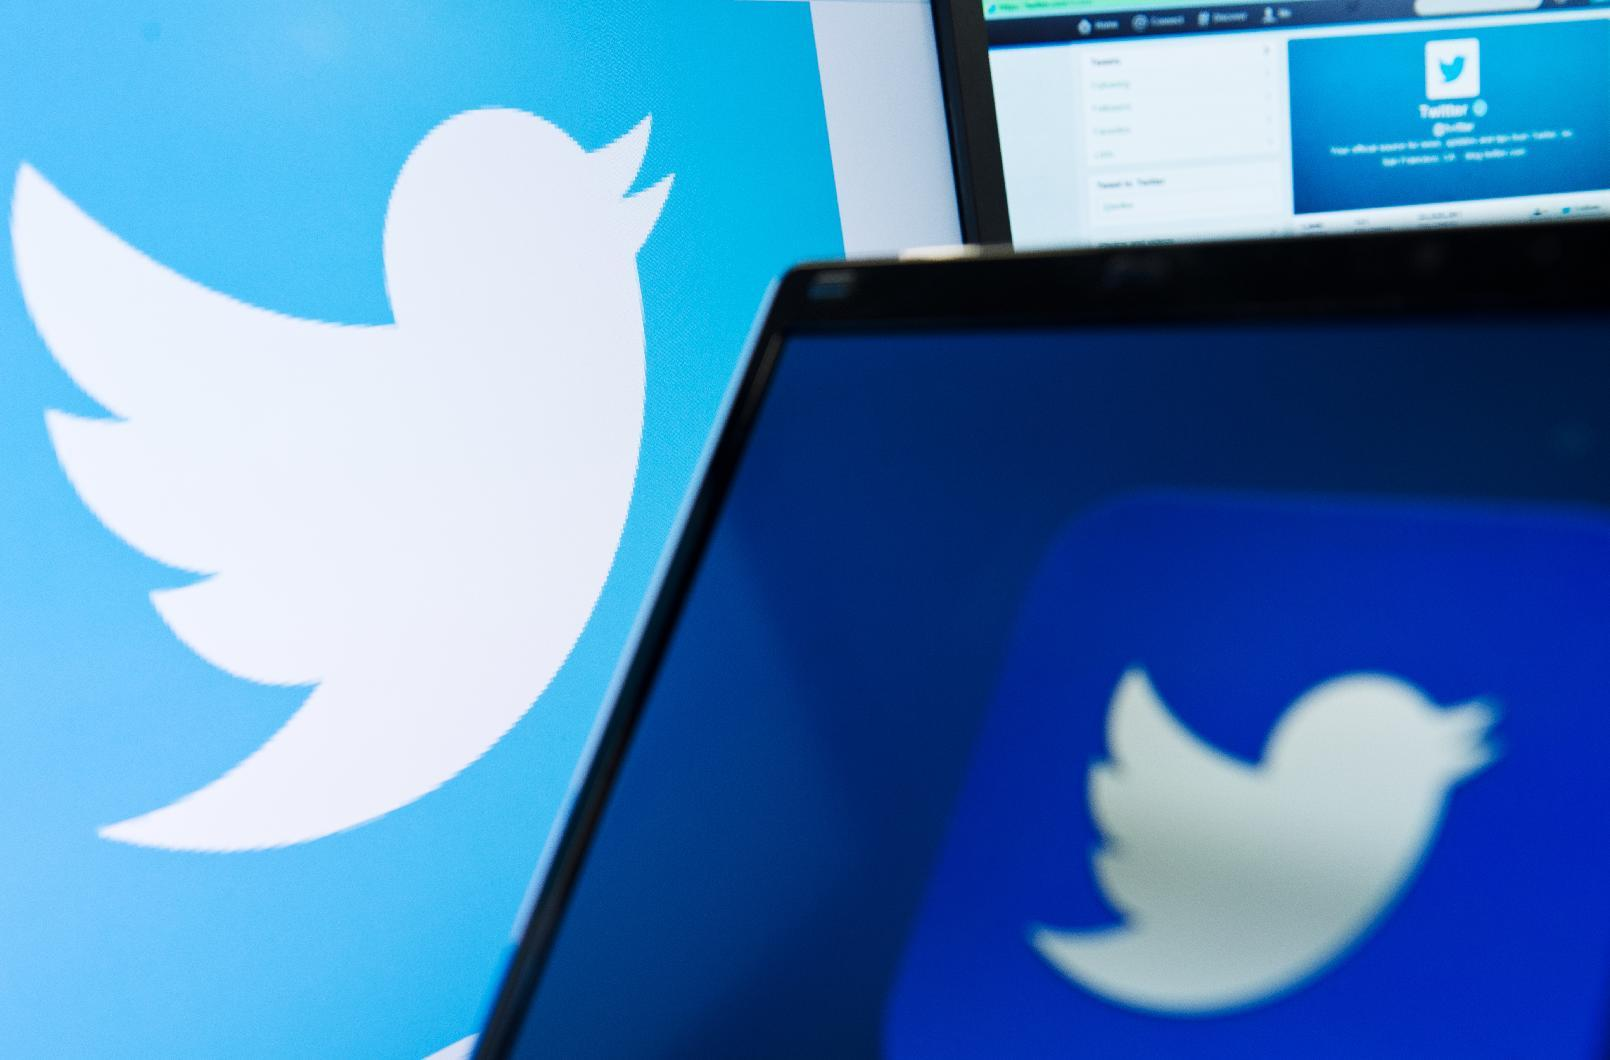 Twitter takes next step in evolution, boosts tweet character counts